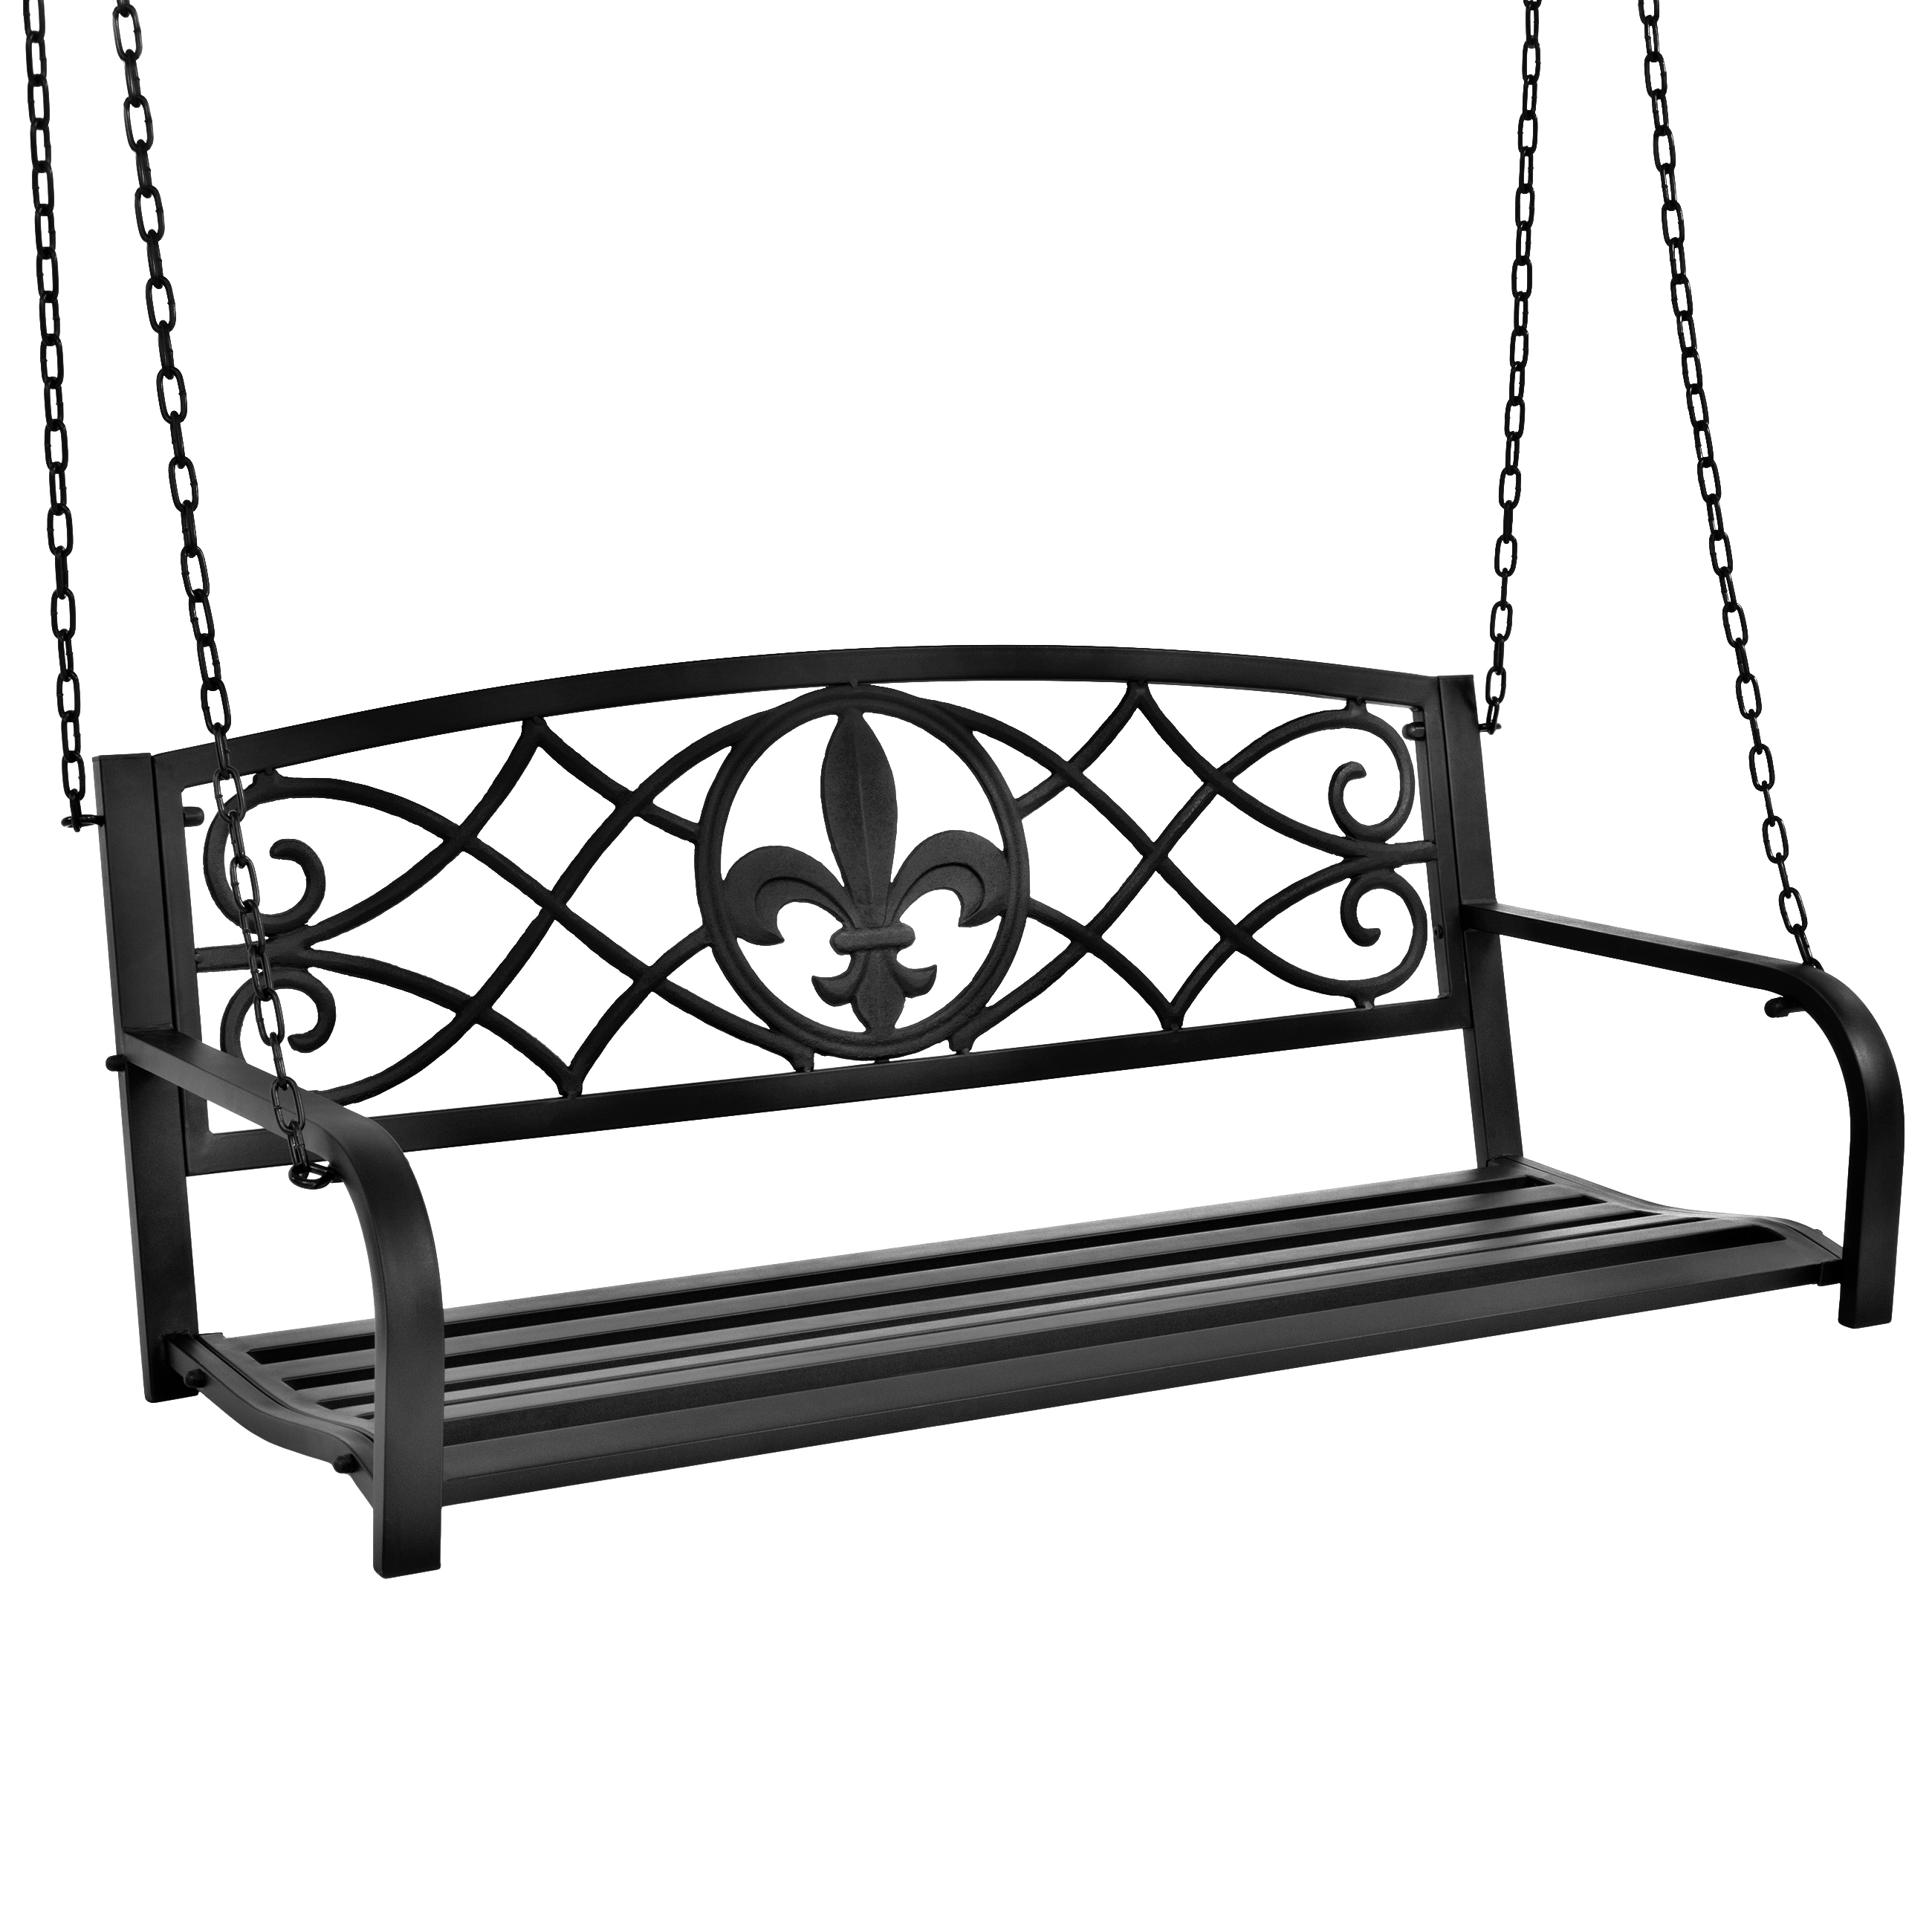 Best Choice Products Outdoor Furniture Metal Fleur-De-Lis Hanging Patio Porch Swing Black by Best Choice Products